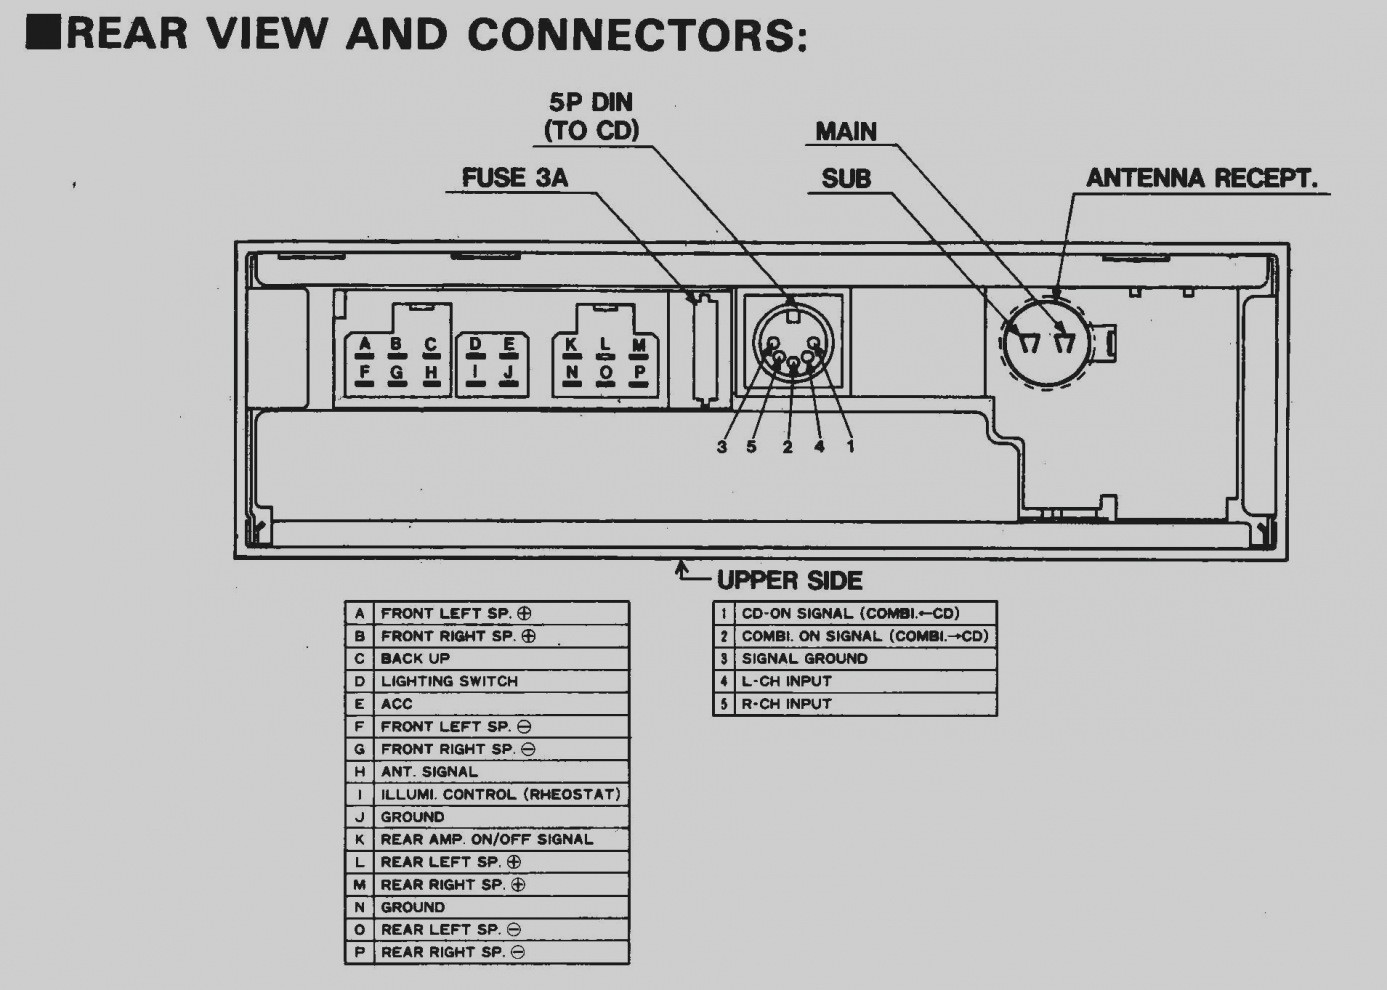 hight resolution of clarion vrx485vd wiring diagram wiring librarywonderful clarion vx401 wiring harness diagram diagramd unit best vz401